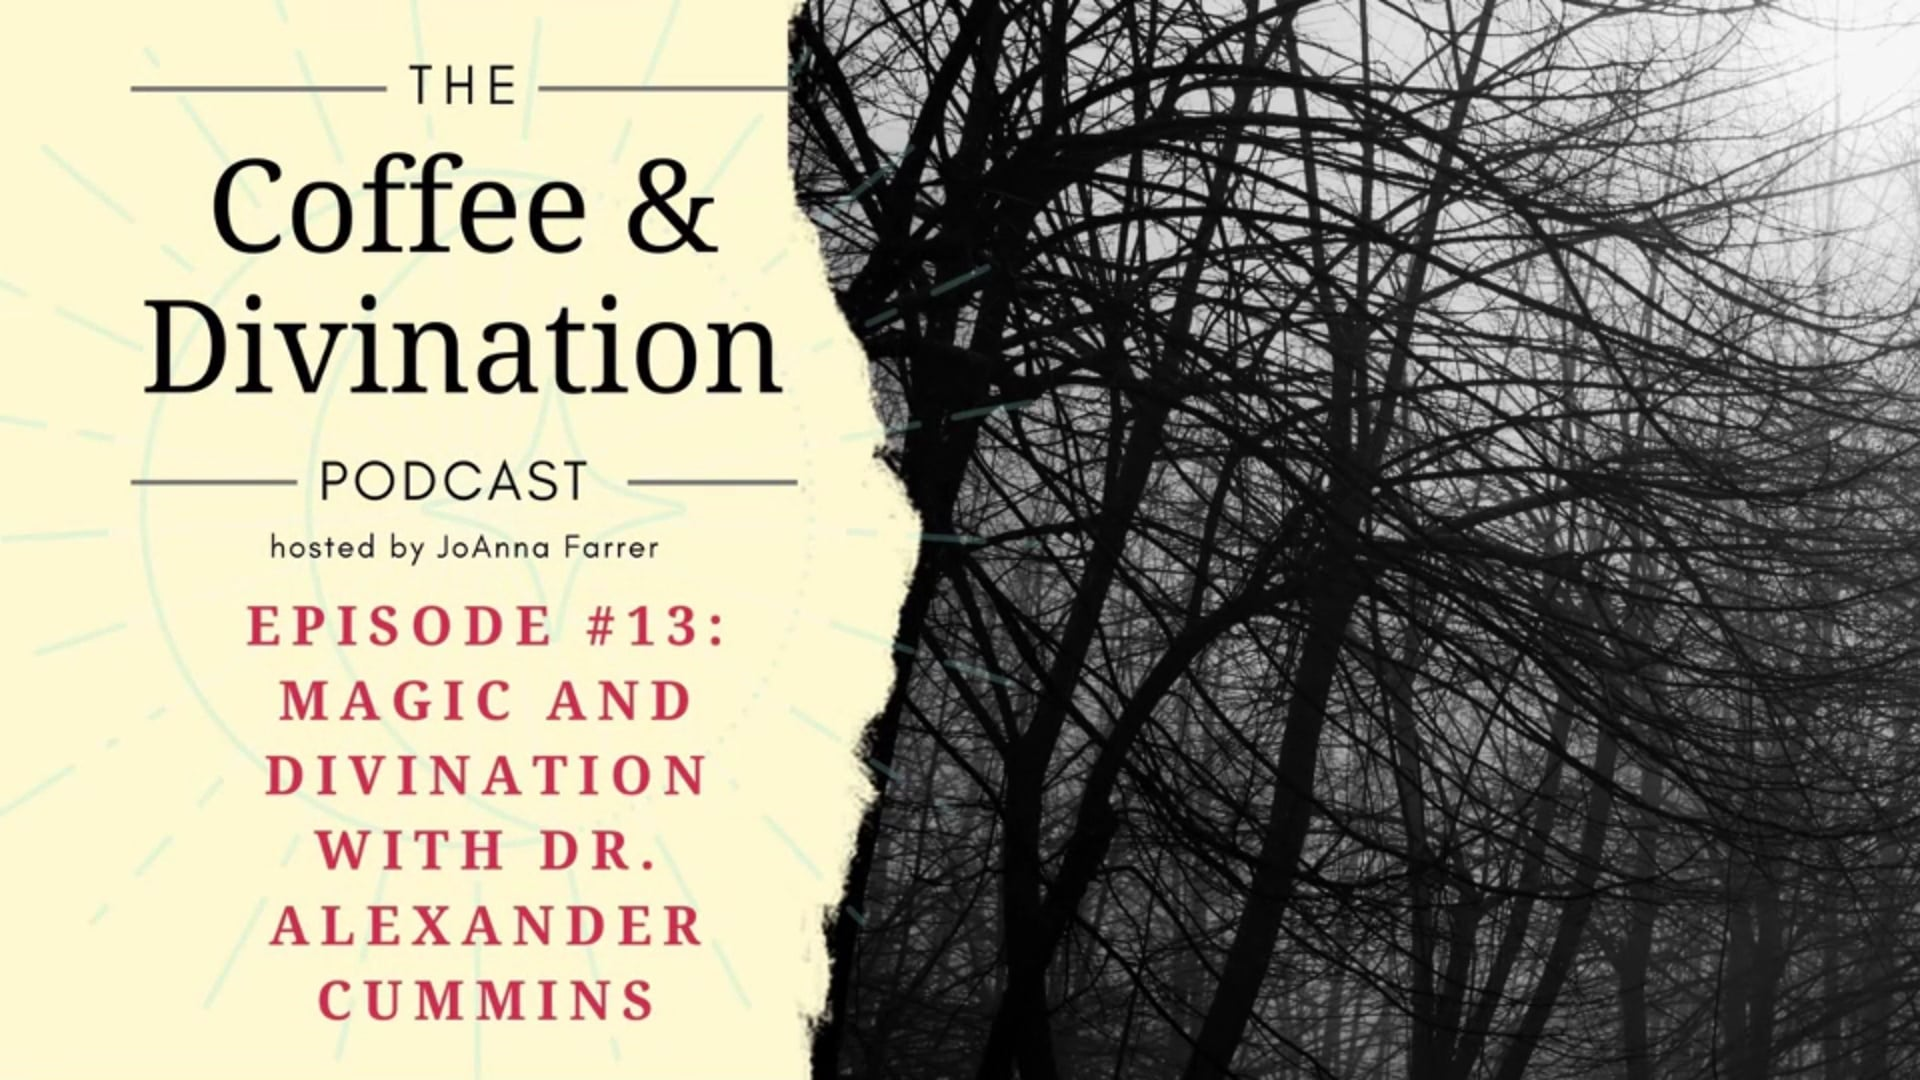 Coffee & Divination - Episode #13: Magic and Divination with Dr. Alexander Cummins